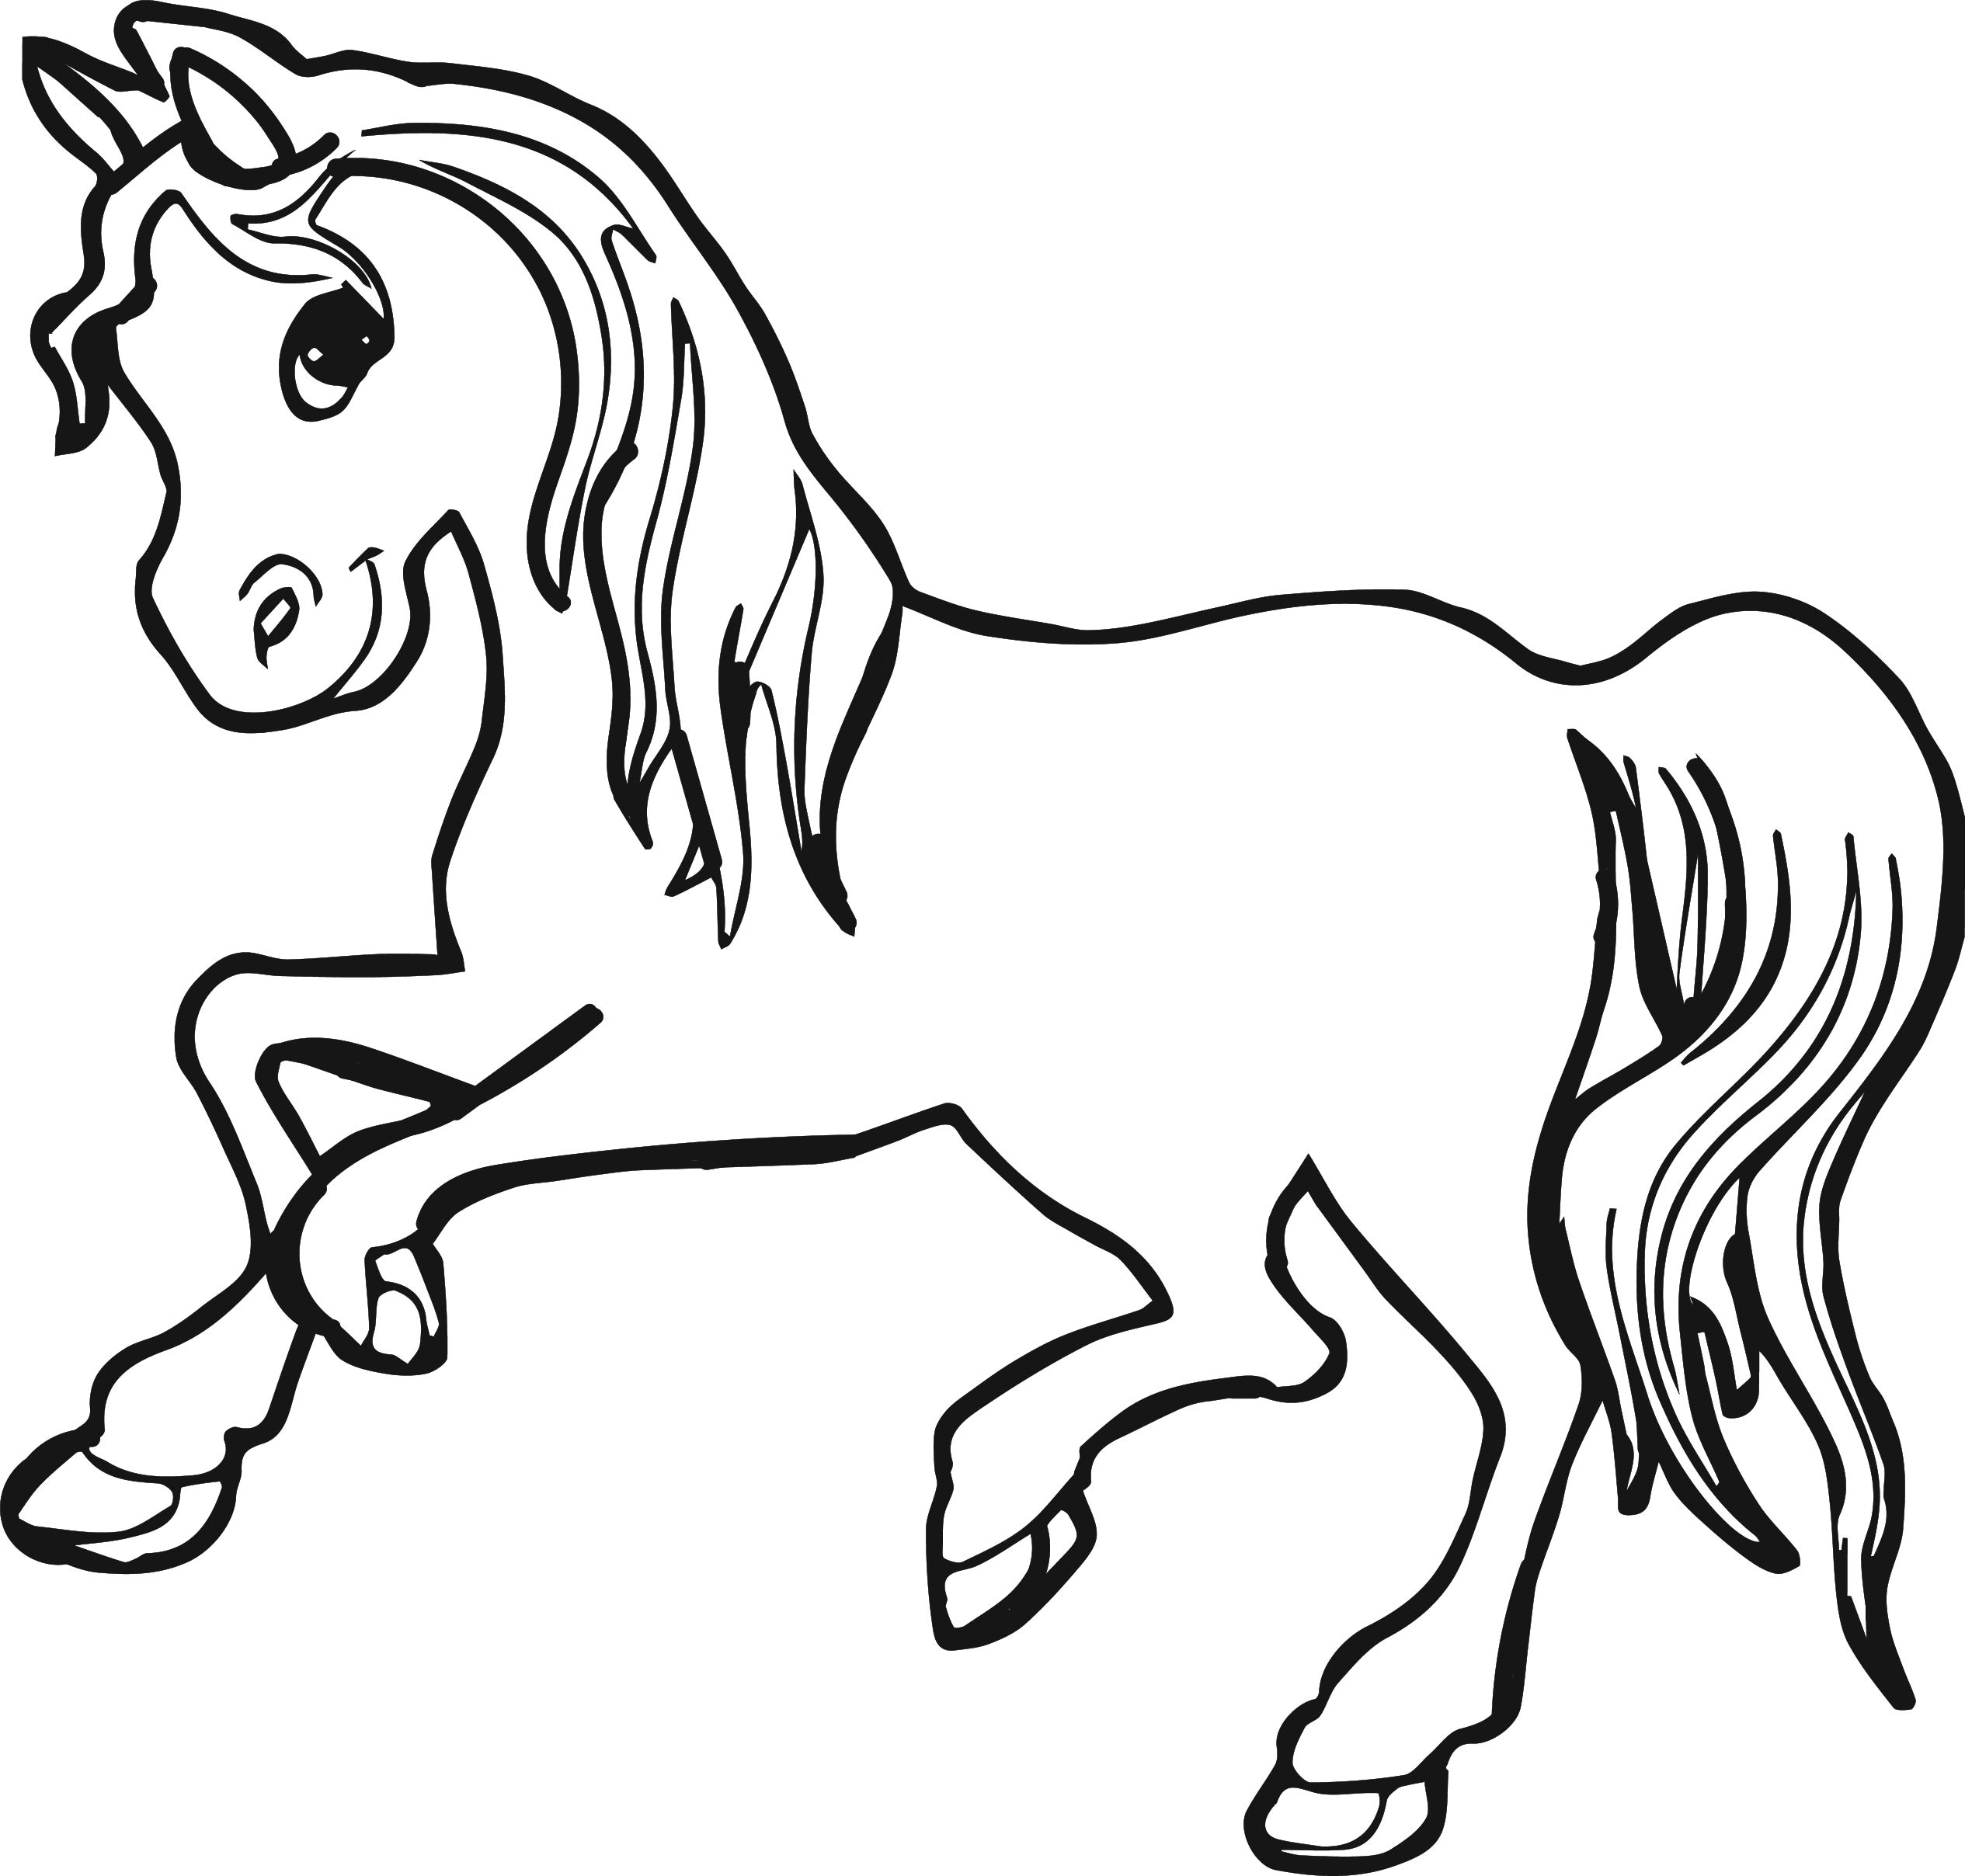 horses to print and color free animals horse printable coloring pages for to horses color print and